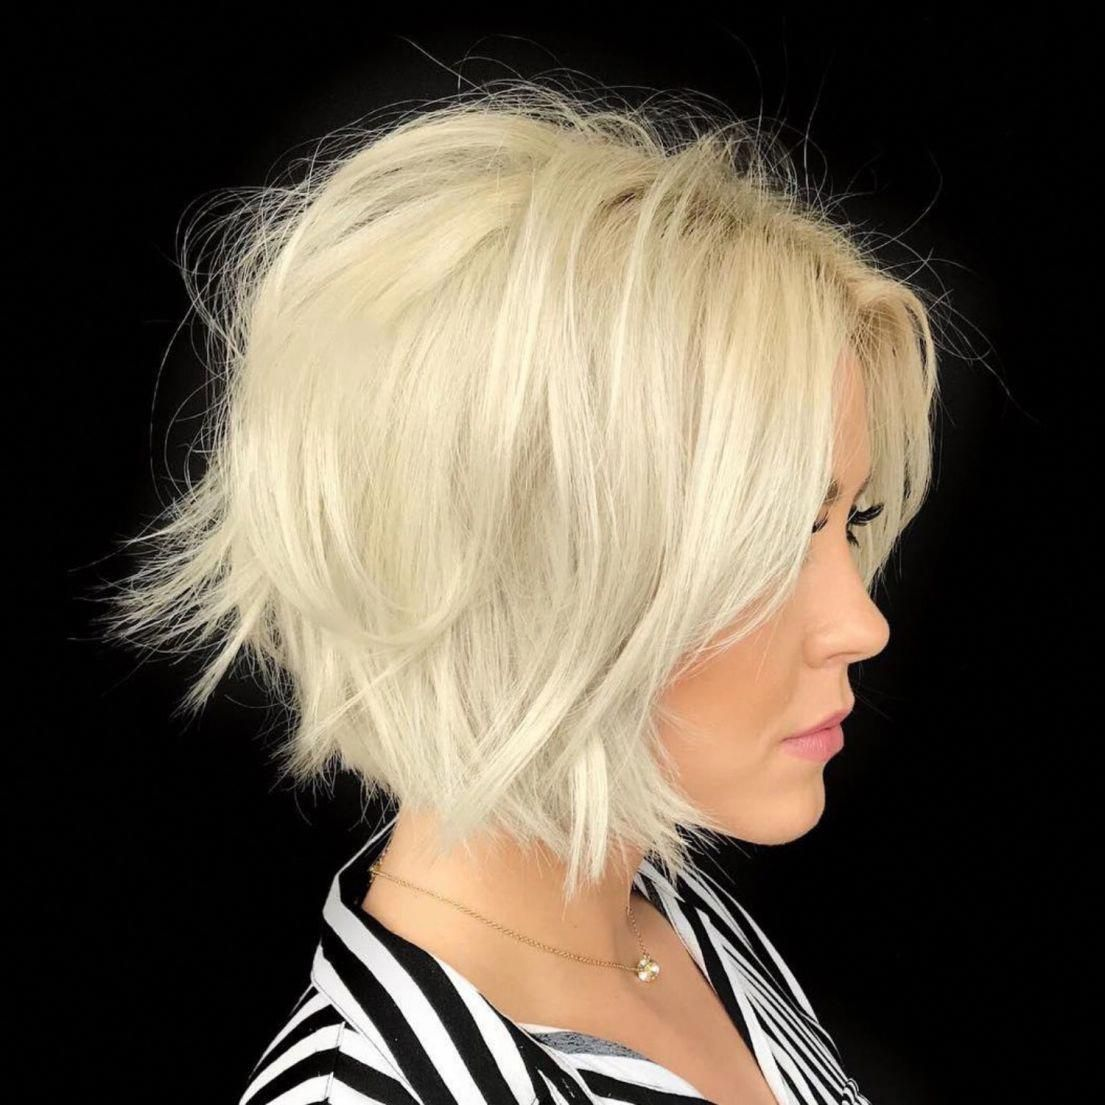 100 Mind Blowing Short Hairstyles For Fine Hair Korte Kapsels Voor Fijn Haar Kapsels Fijn Haar Kapsels